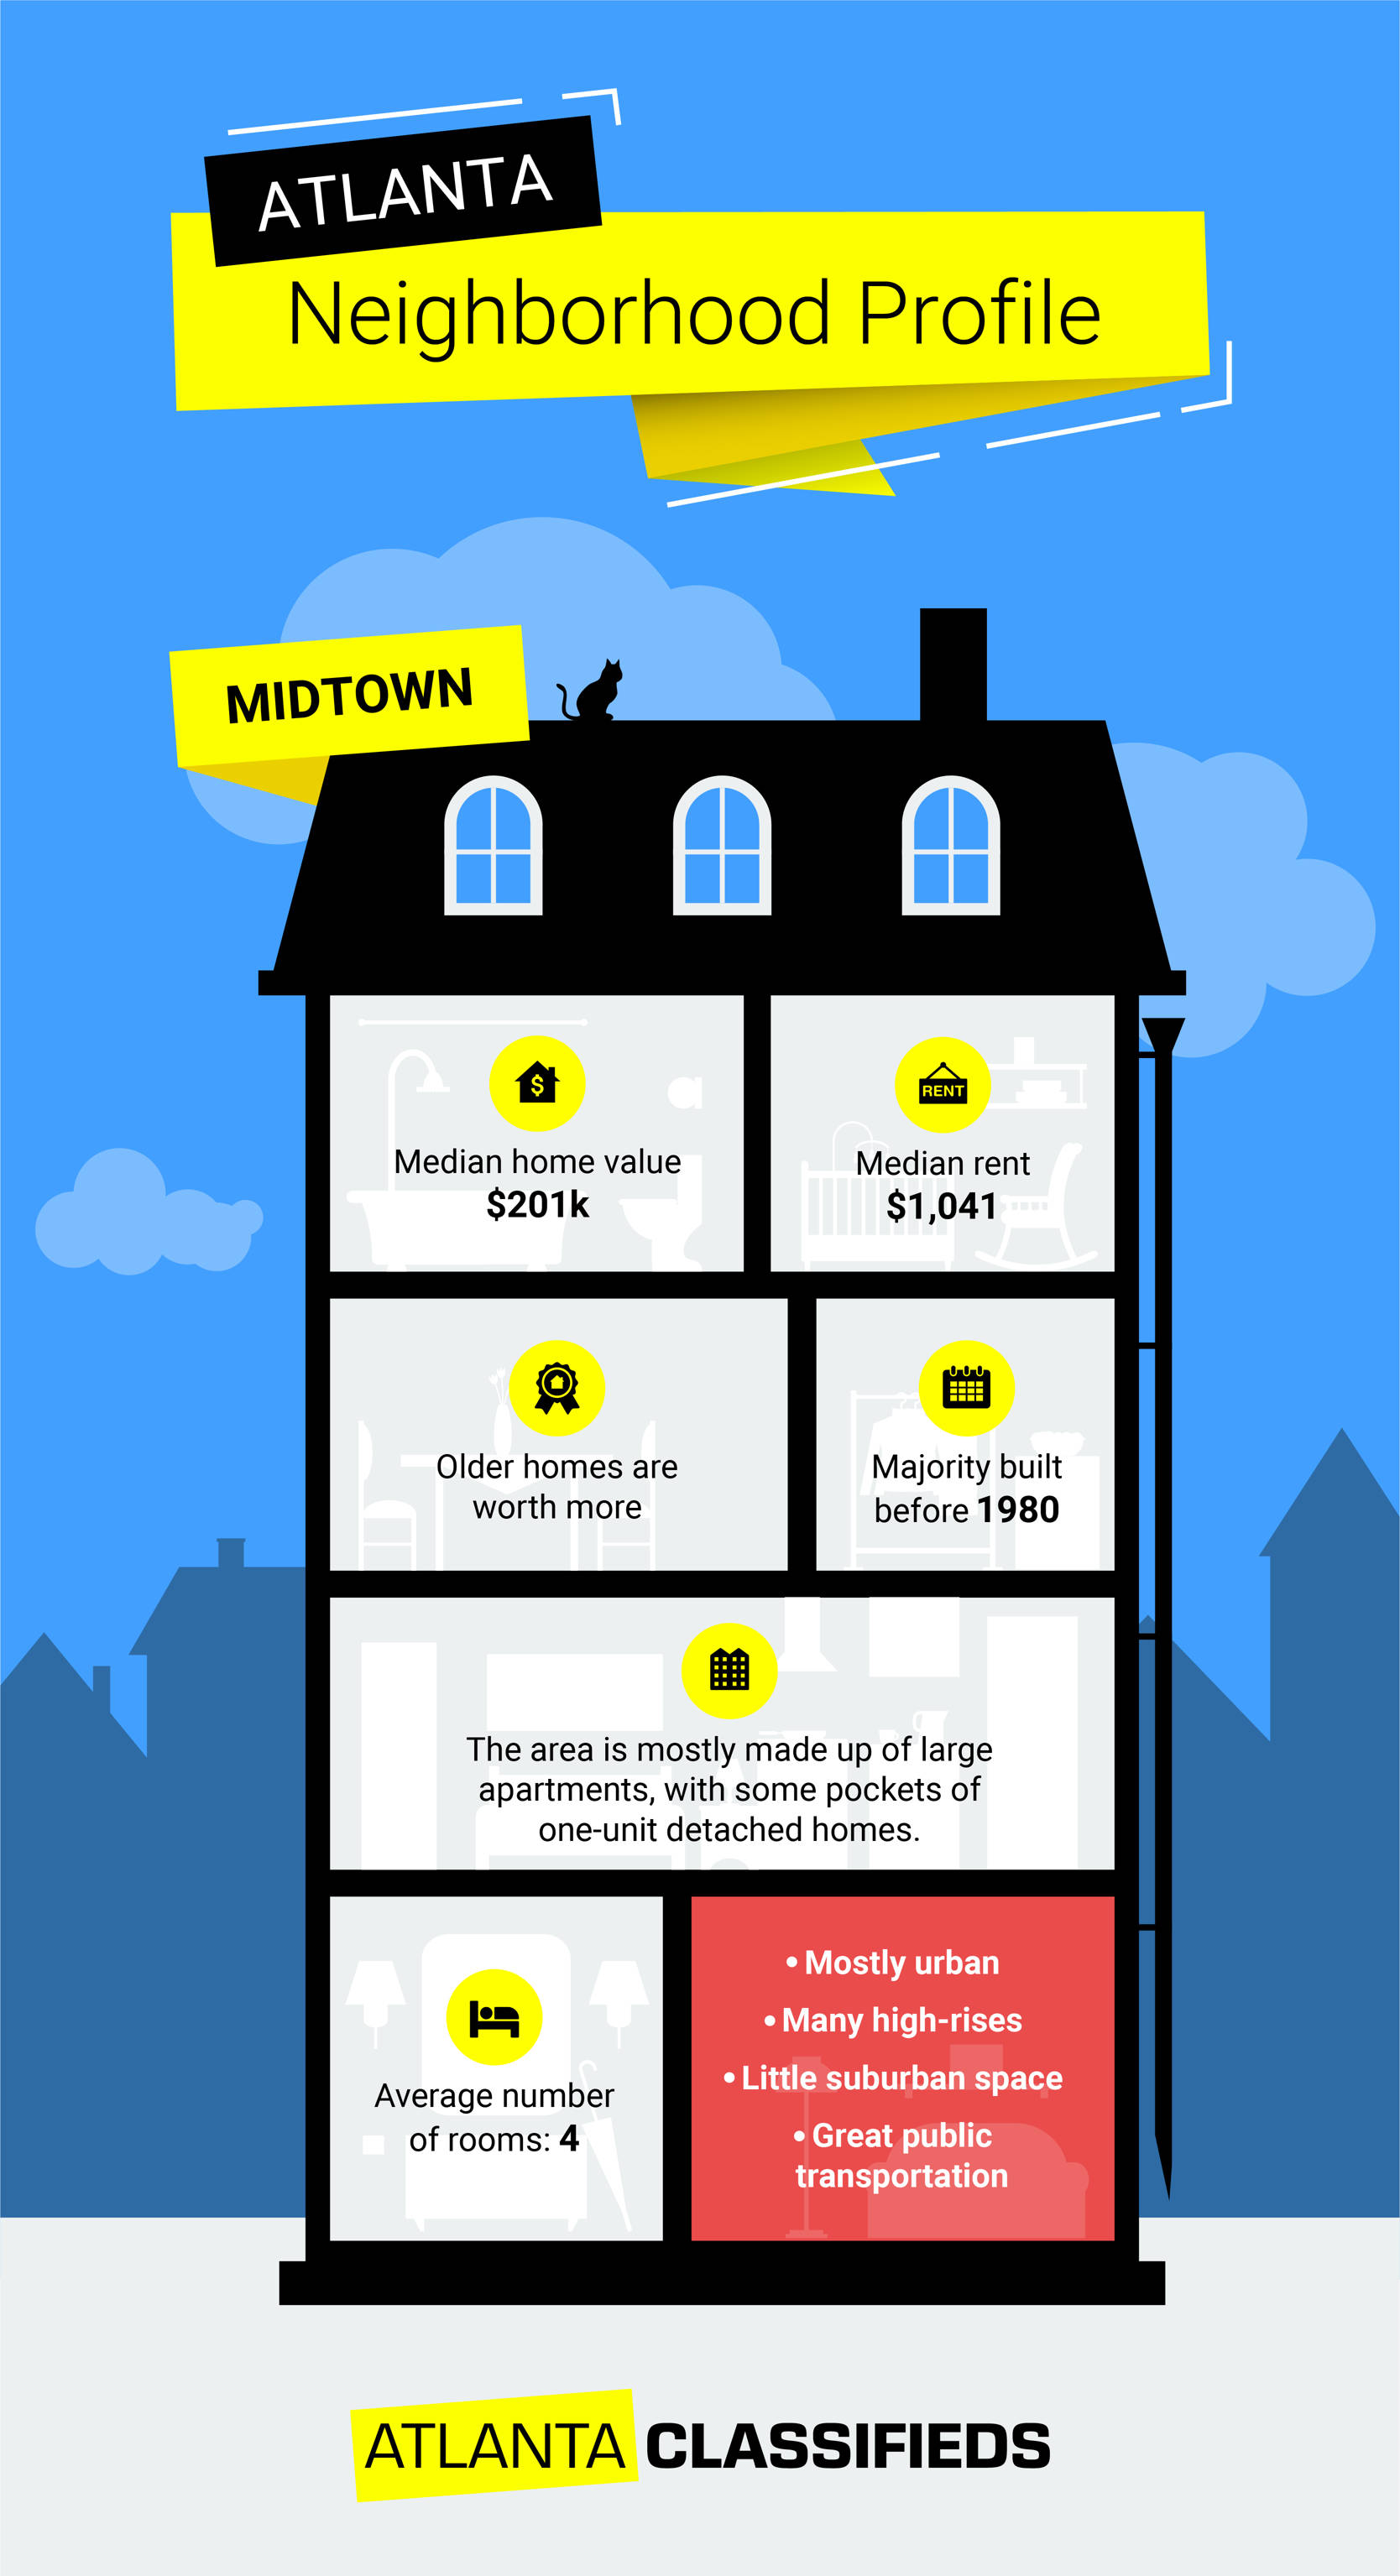 Tips for renting an apartment or buying a home in Midtown Atlanta, GA.